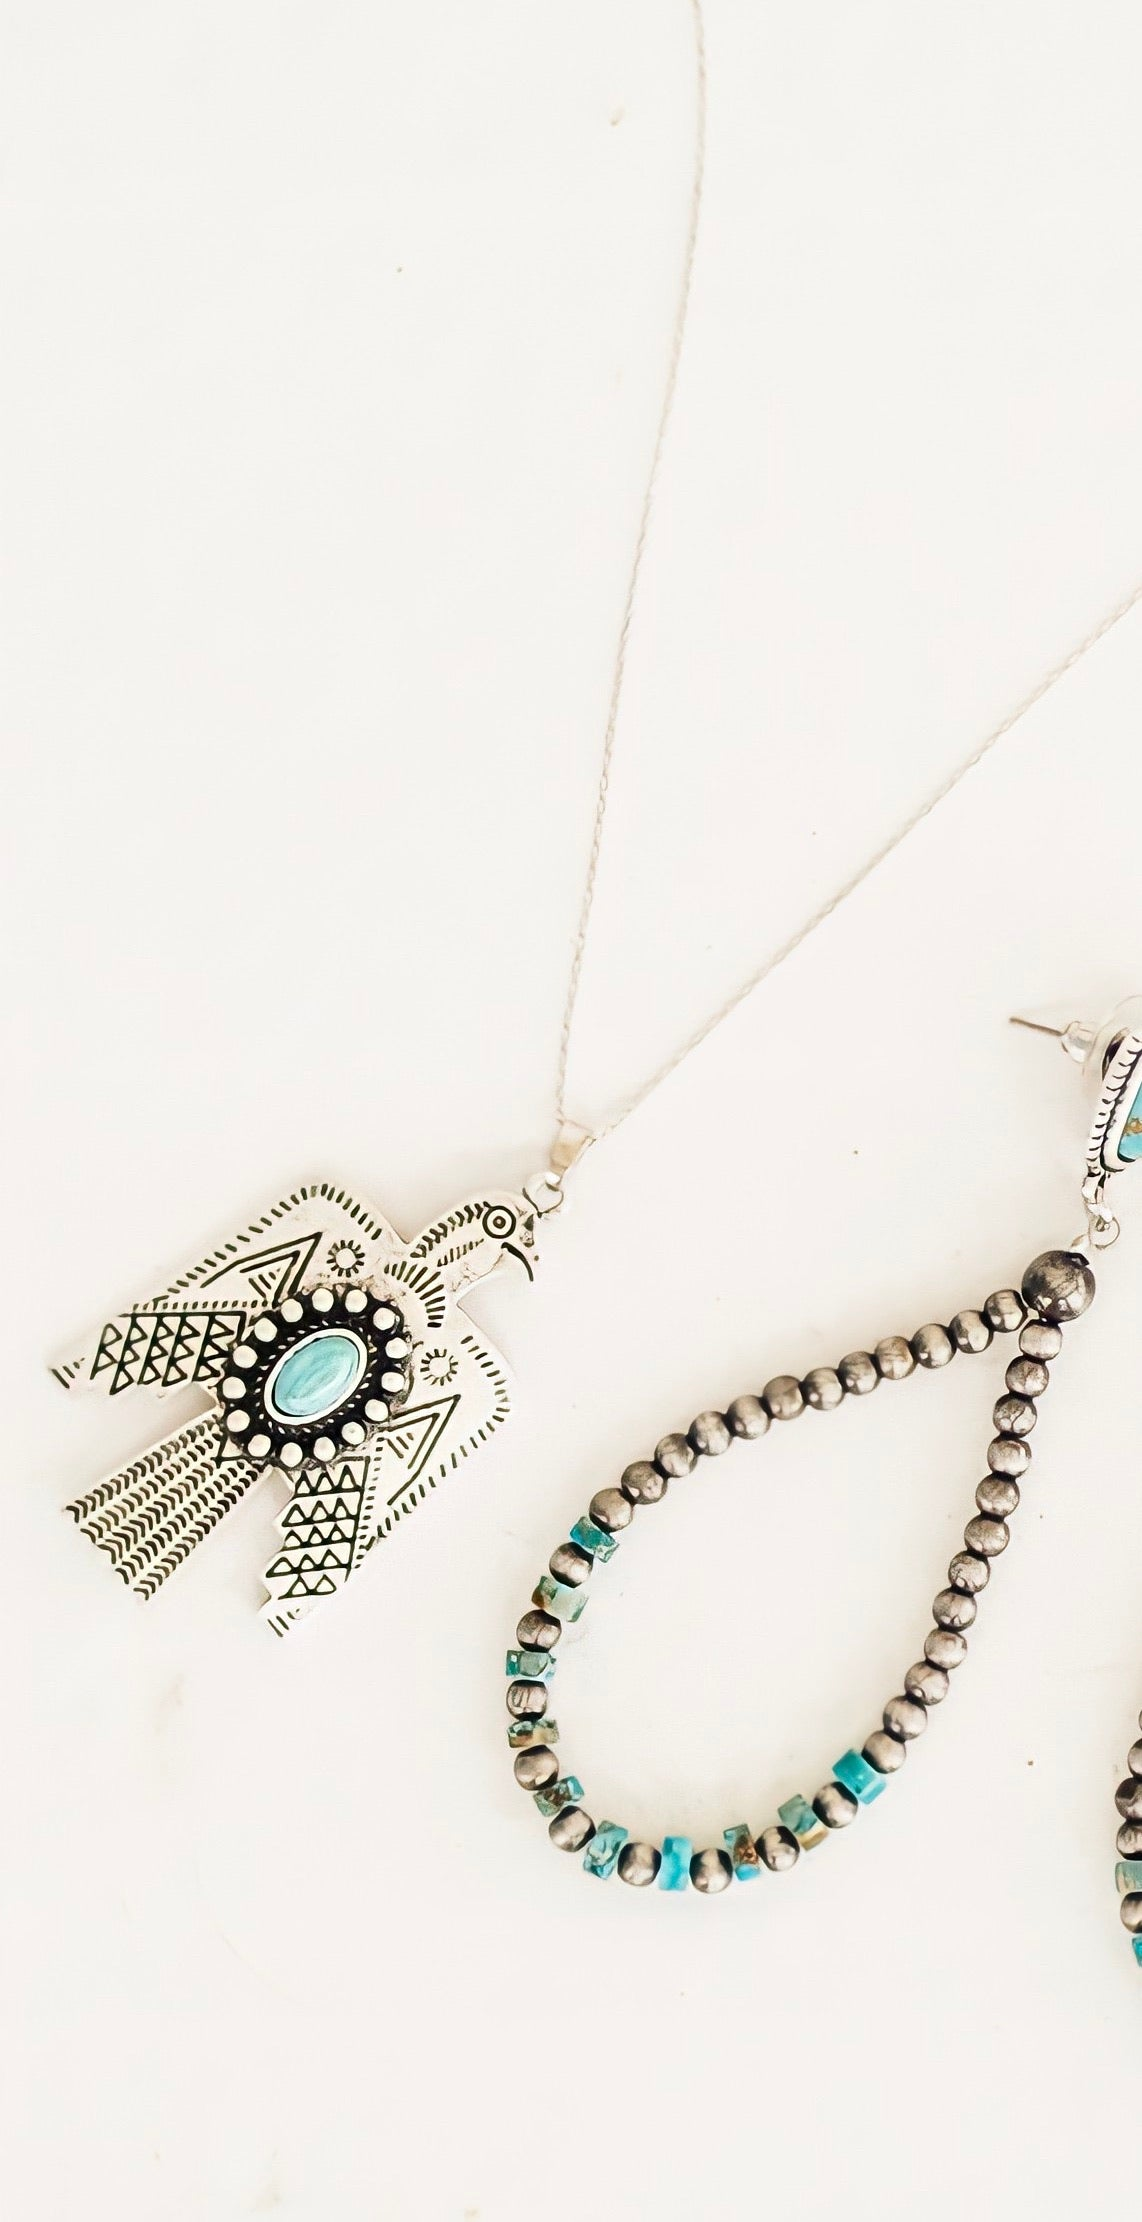 Fly High Pendant Necklace